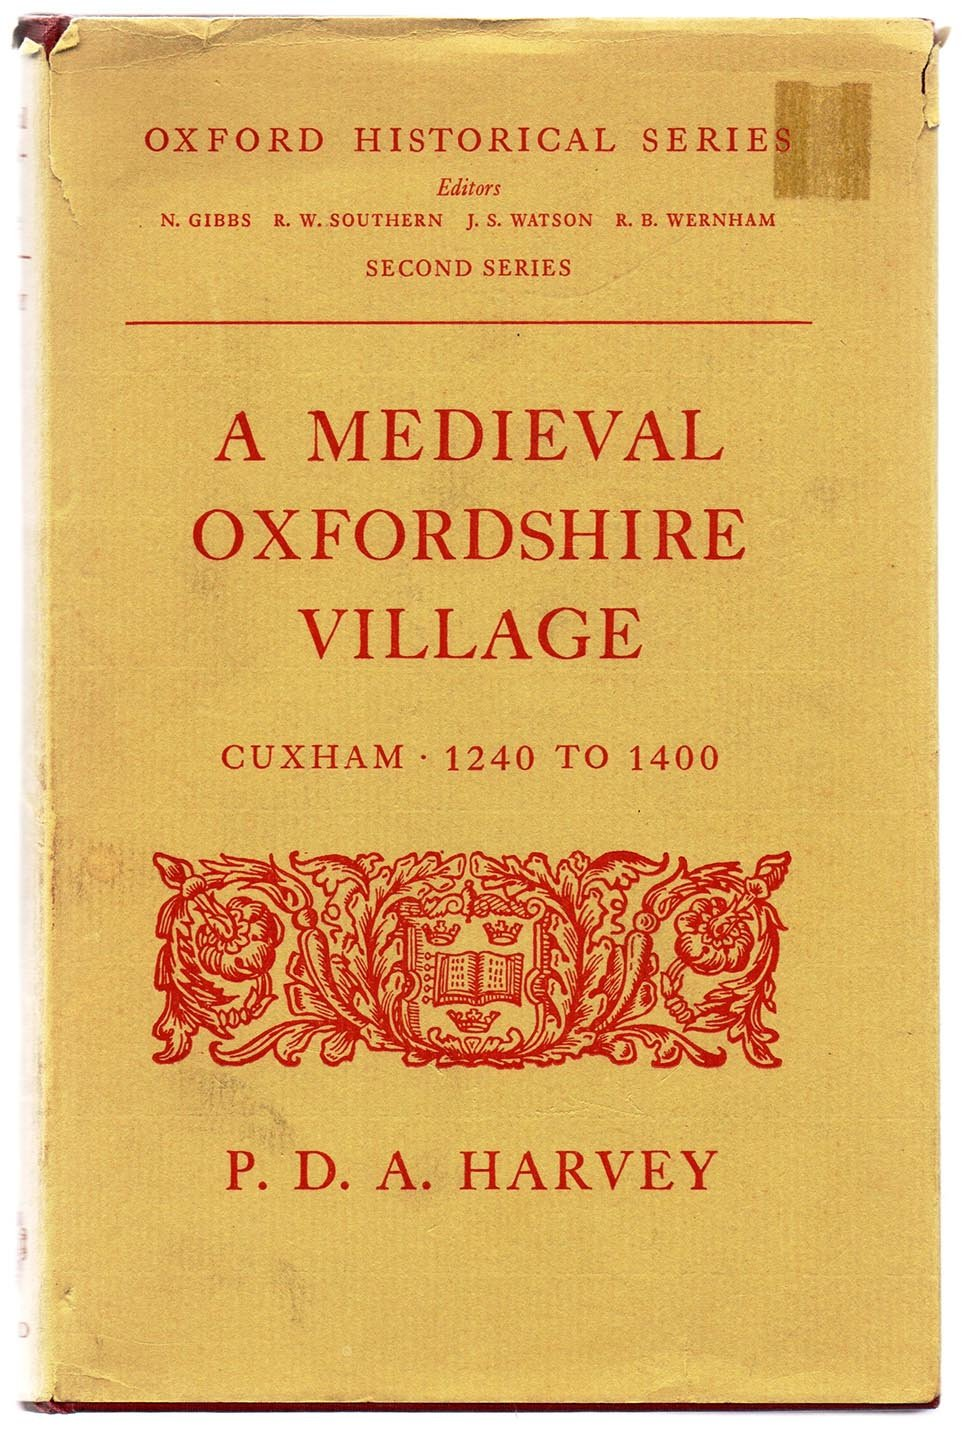 A Medieval Oxfordshire Village: Cuxham 1240 to 1400